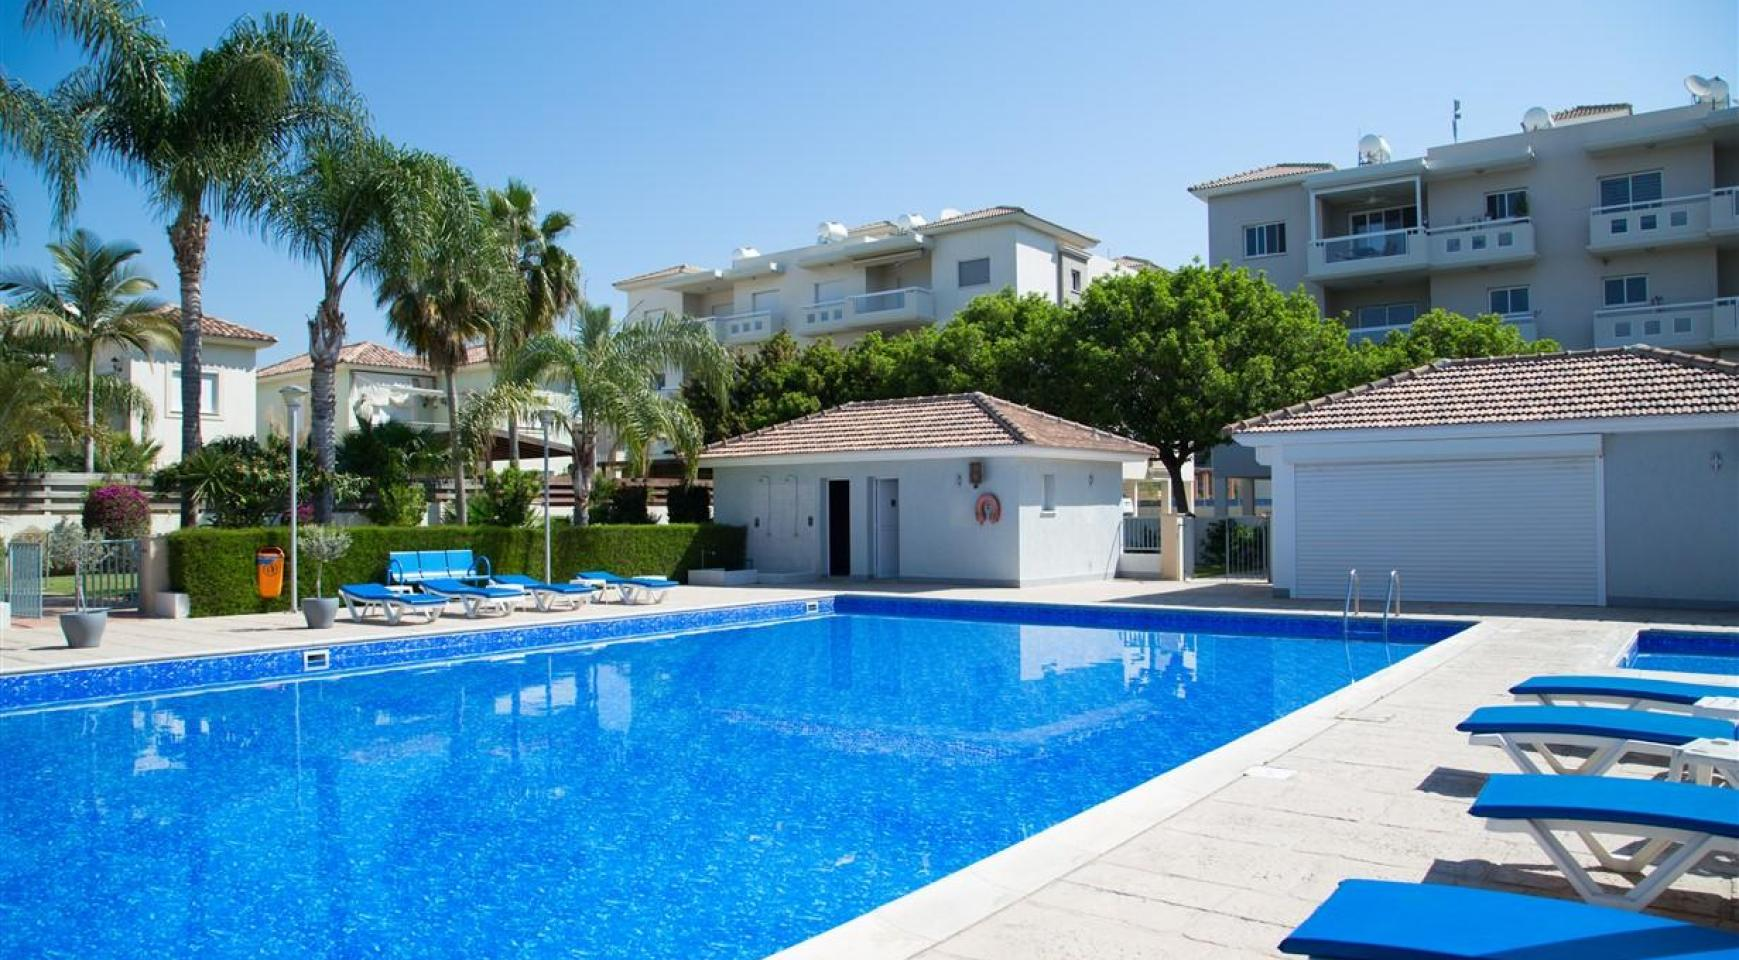 Αντίγραφο Luxury 2 Bedroom Apartment Mesogios Iris 304 in the Tourist area near the Beach - 30